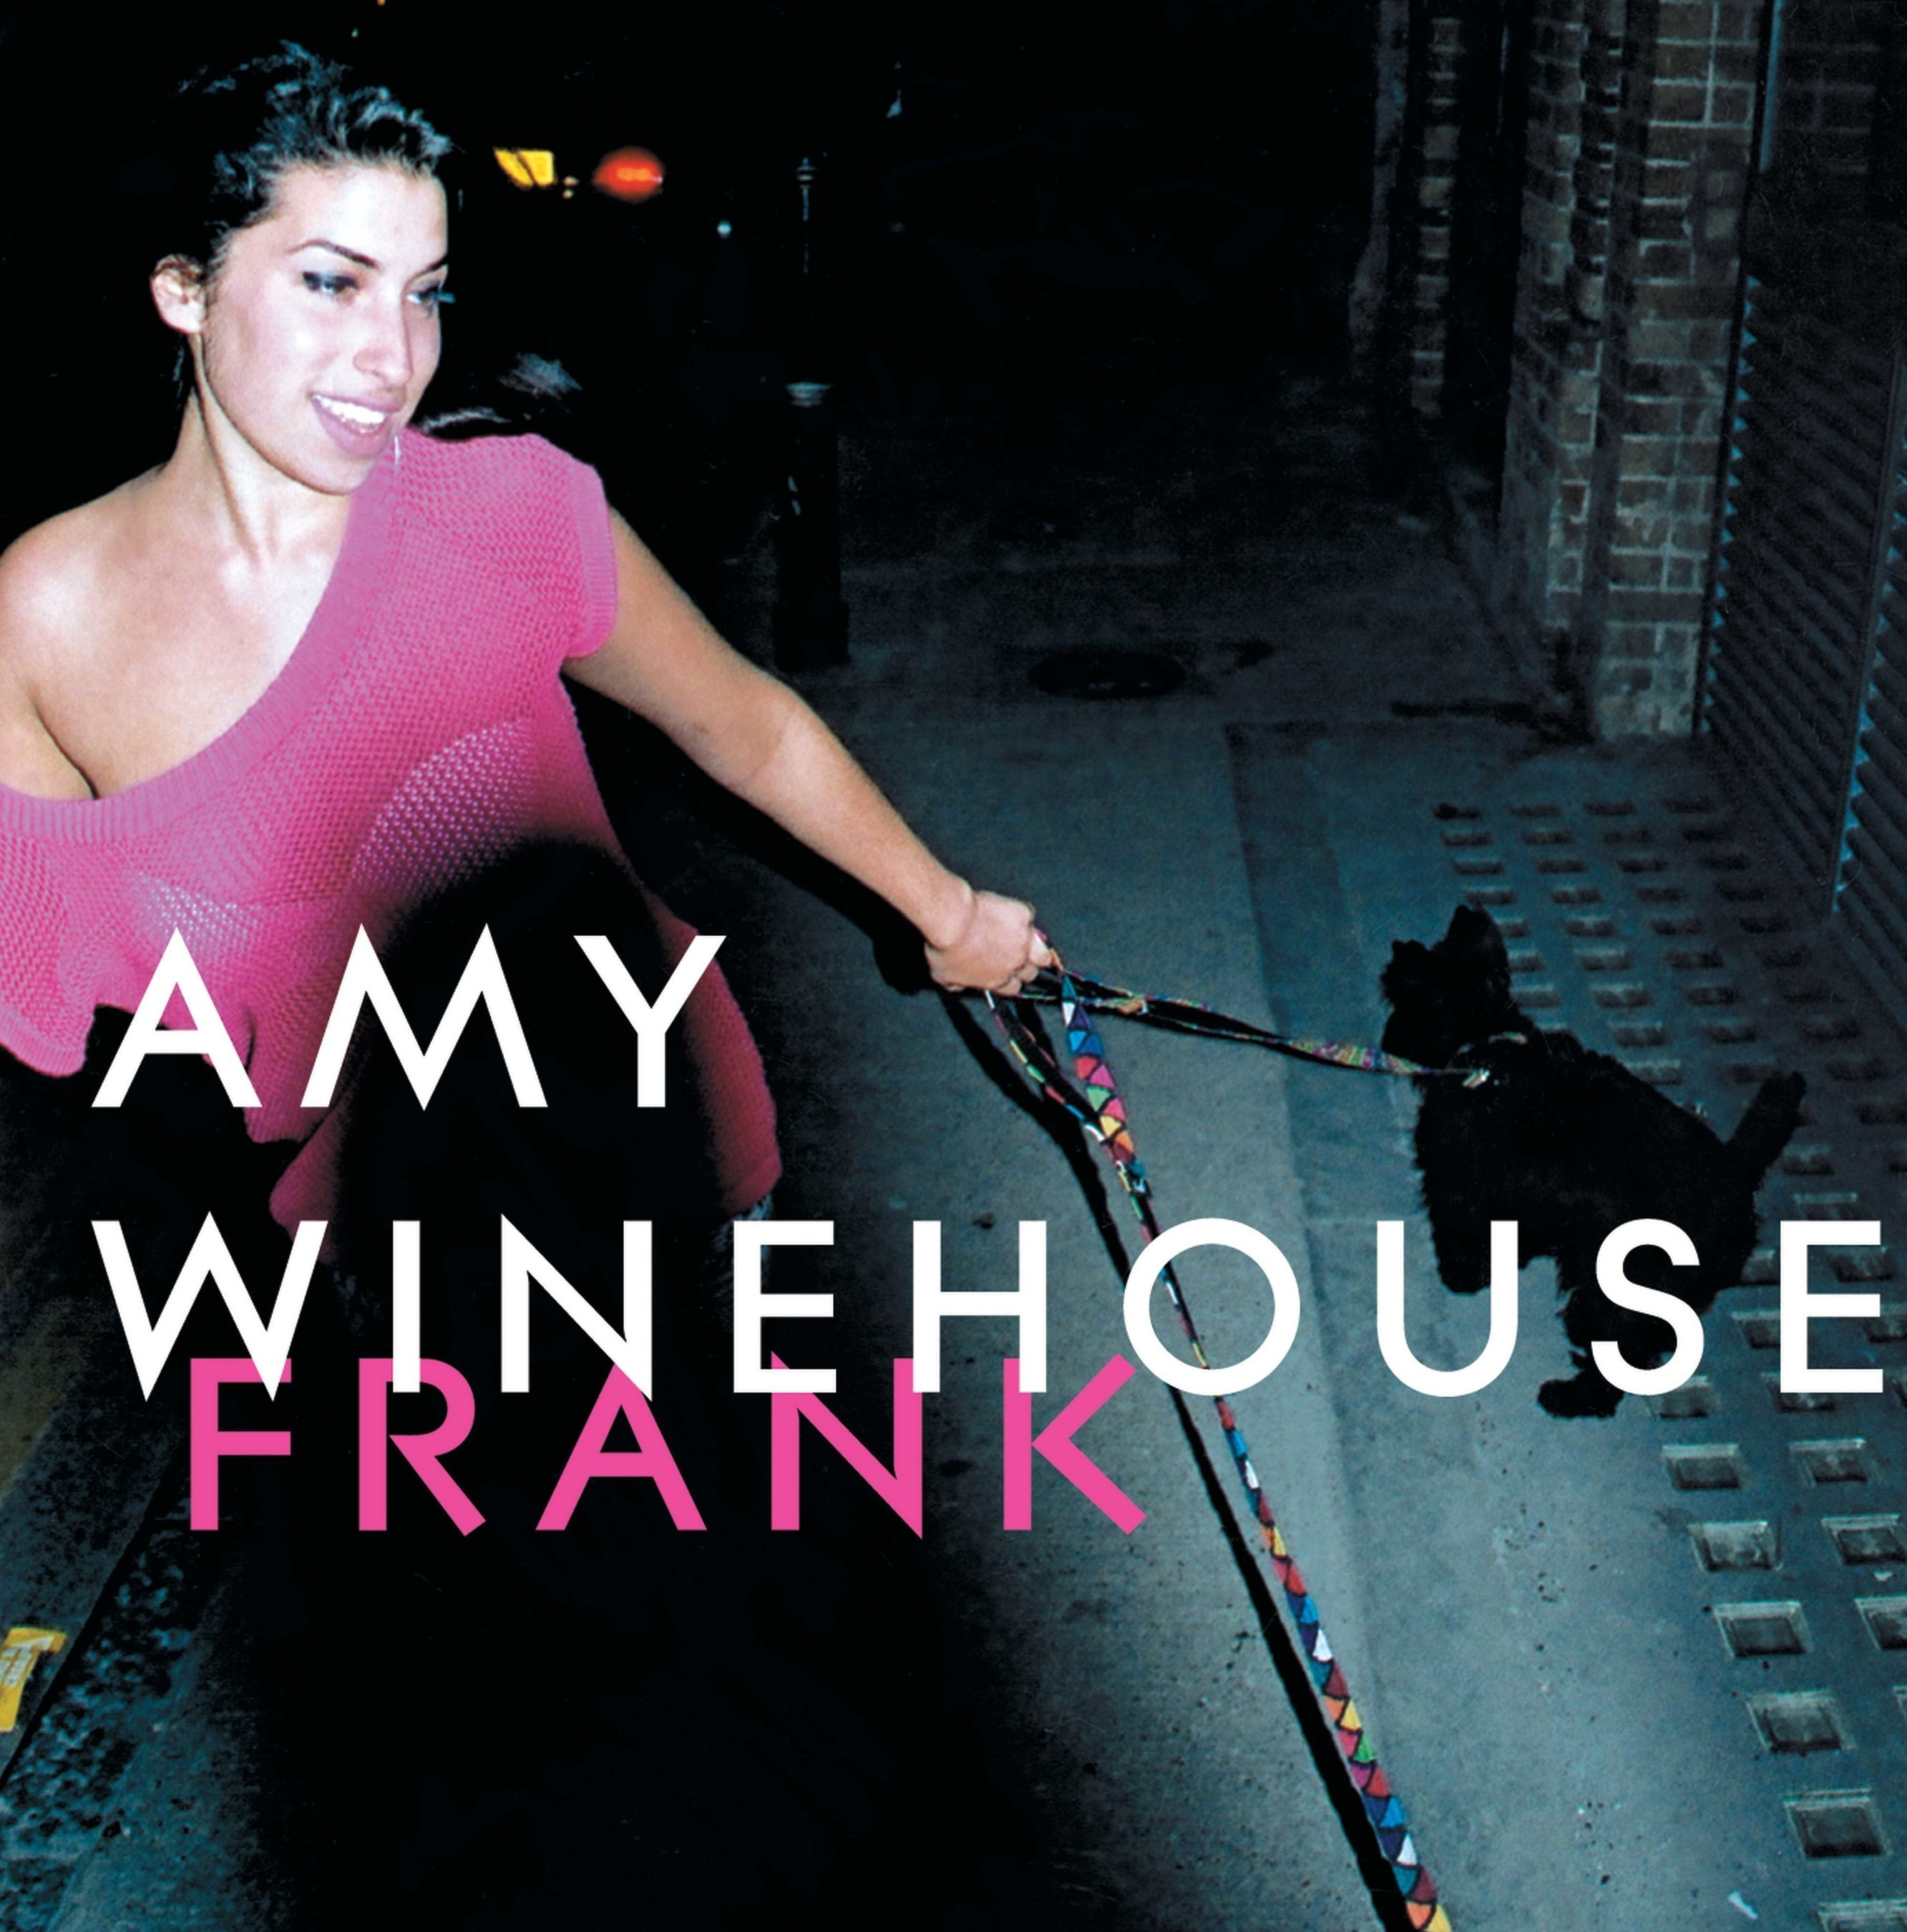 Revisiting Amy Winehouse's Debut Album, Frank, 15 Years On